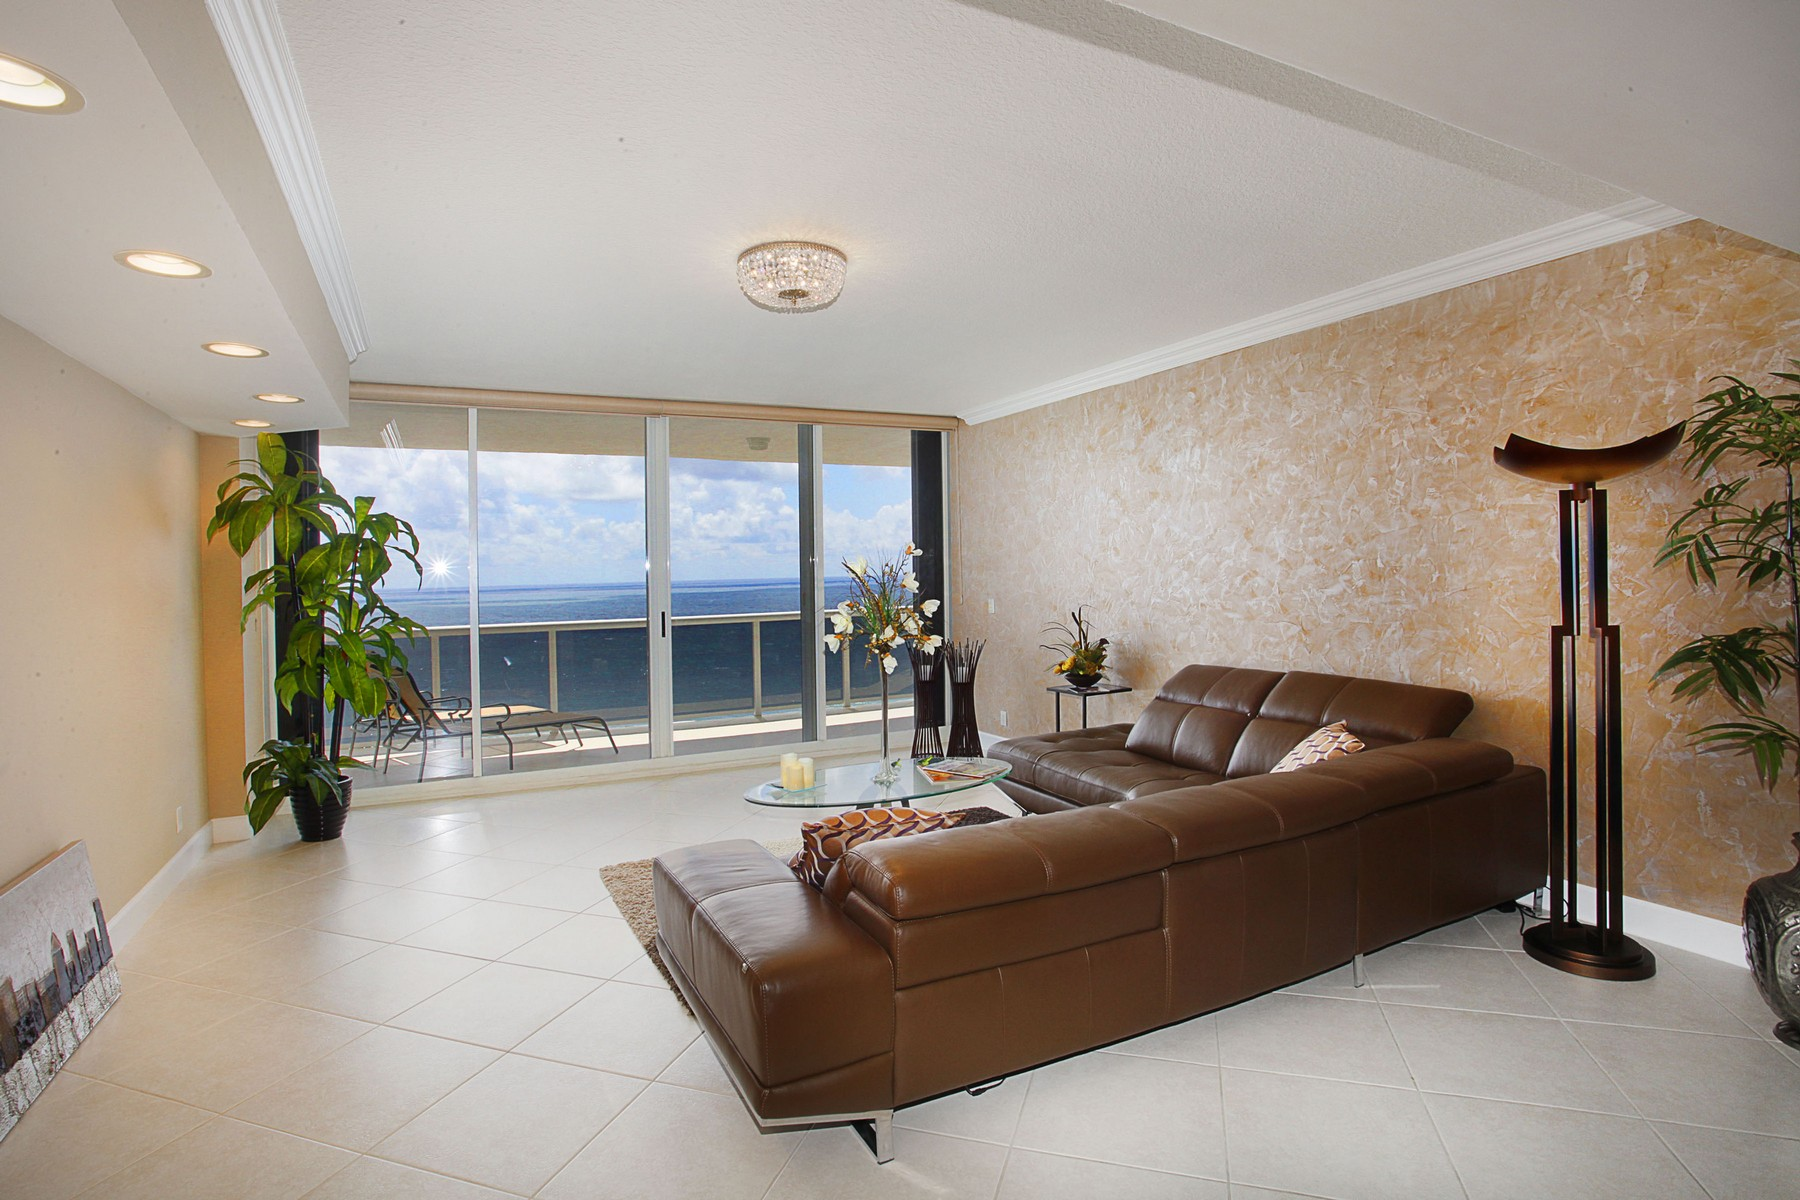 Condominium for Sale at L'Hermitage 3200 N. Ocean Blvd. #1902 Fort Lauderdale, Florida 33308 United States